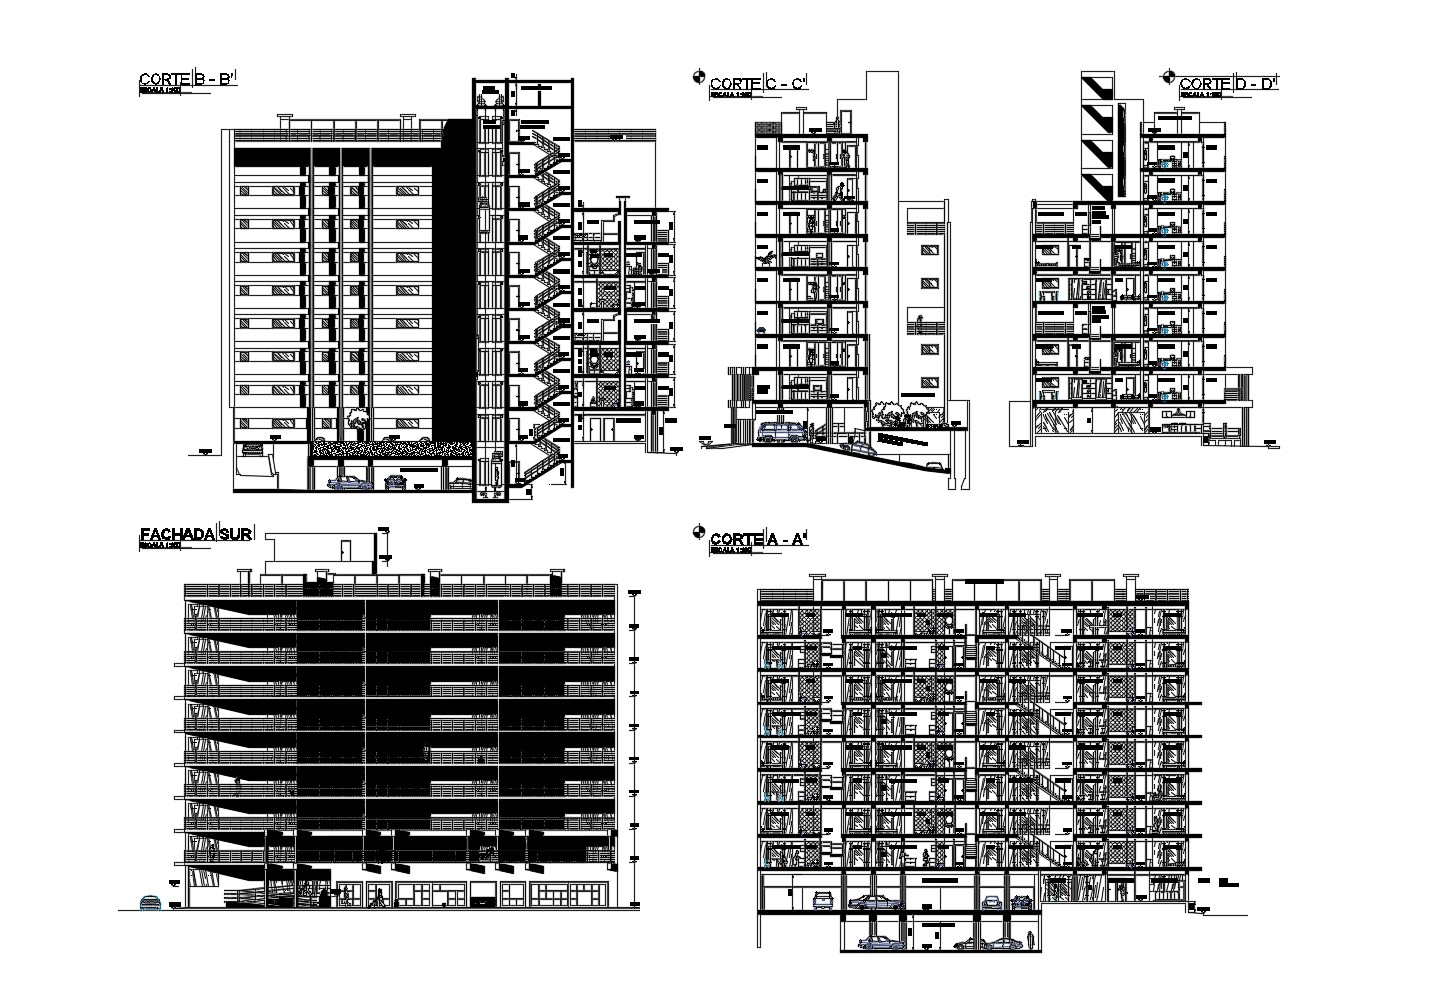 Multistorey building design in AutoCAD file